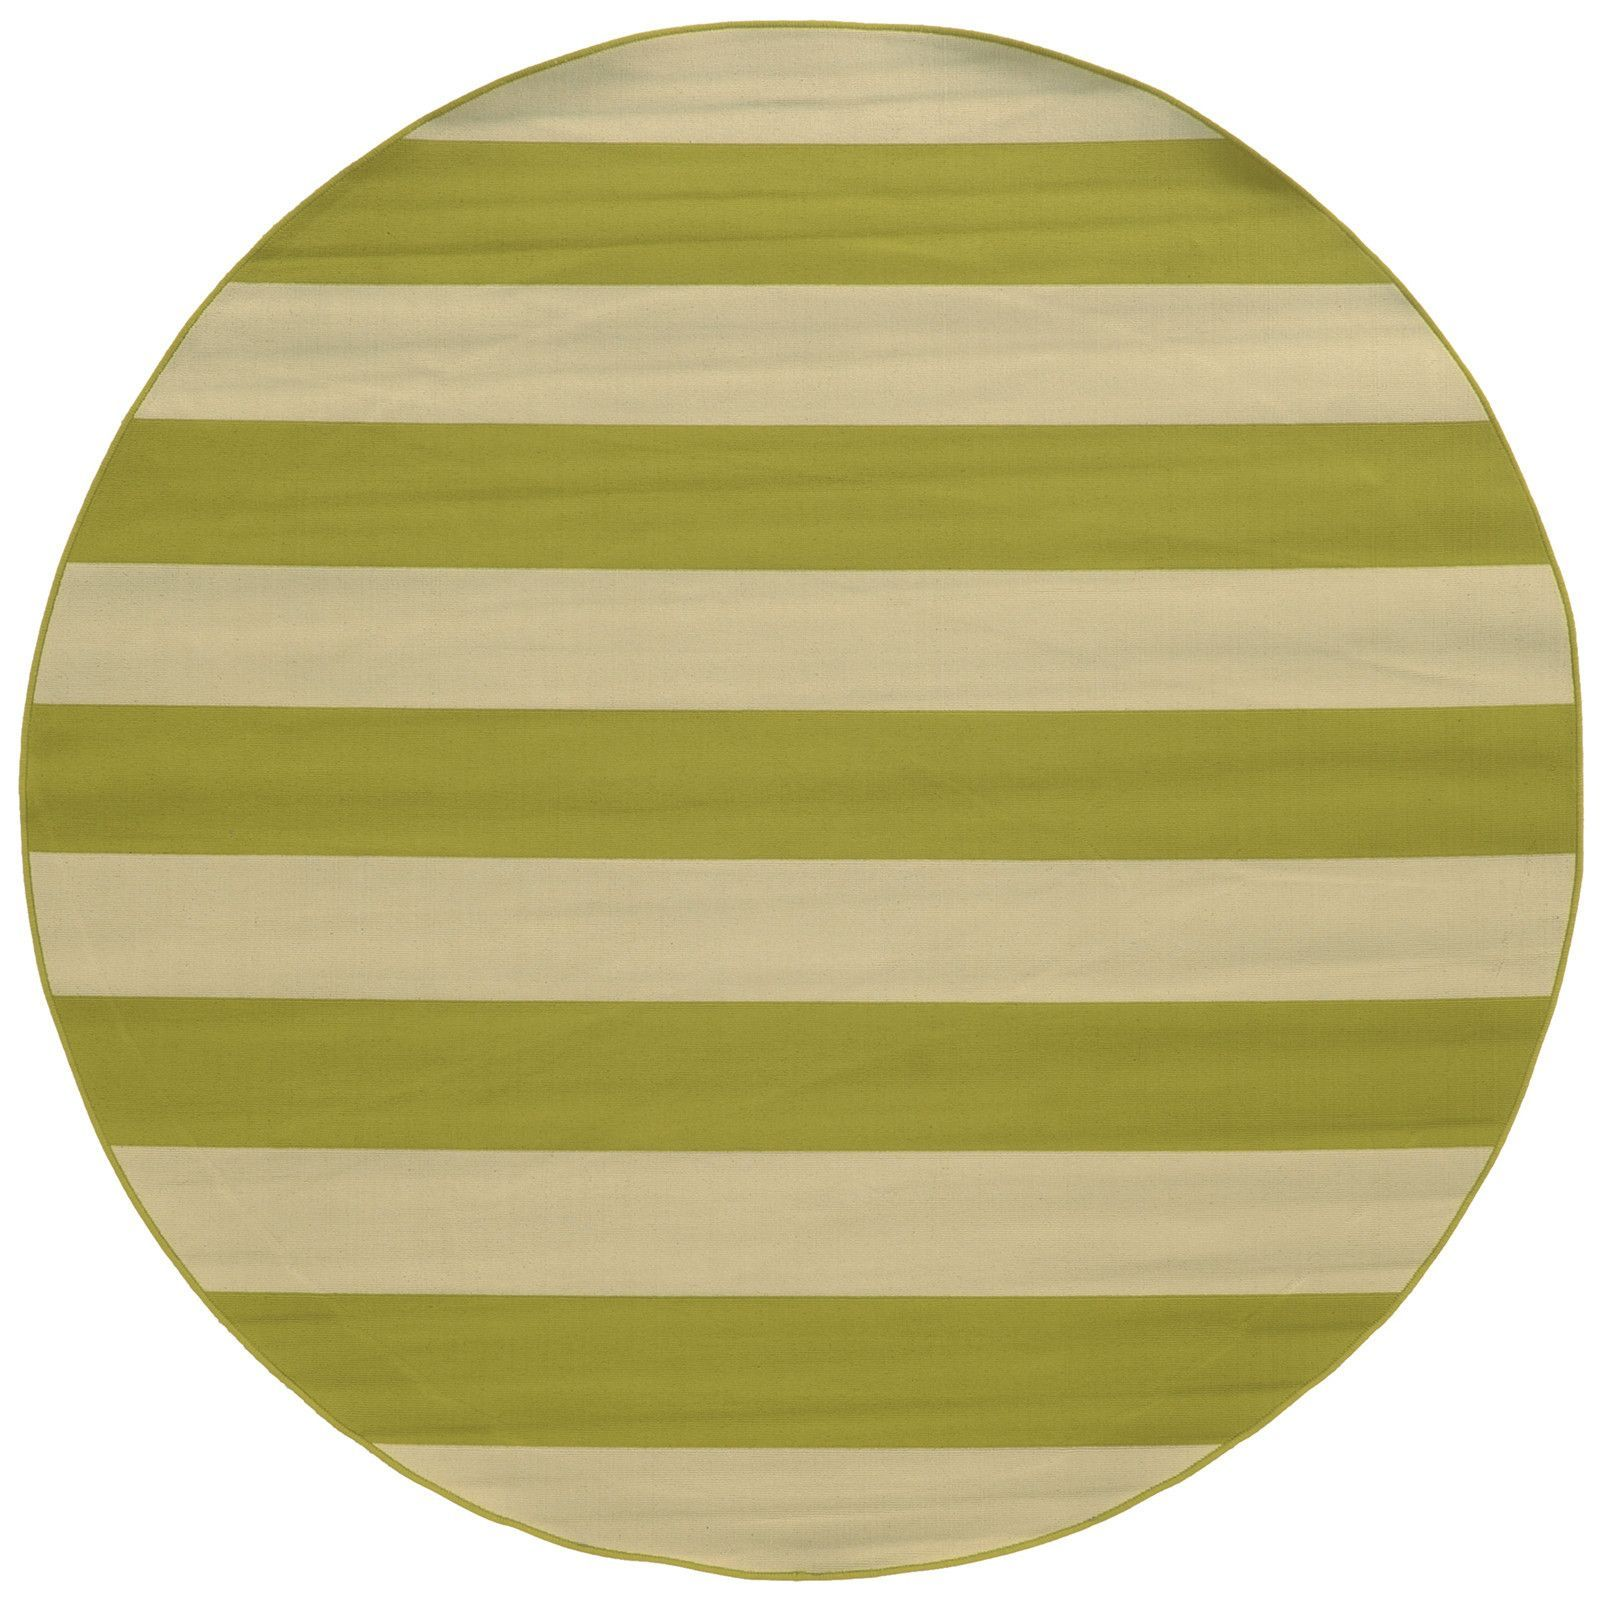 Cool Lime Green Rug: Oriental Weavers Round Lime Green & Ivory Outdoor Striped